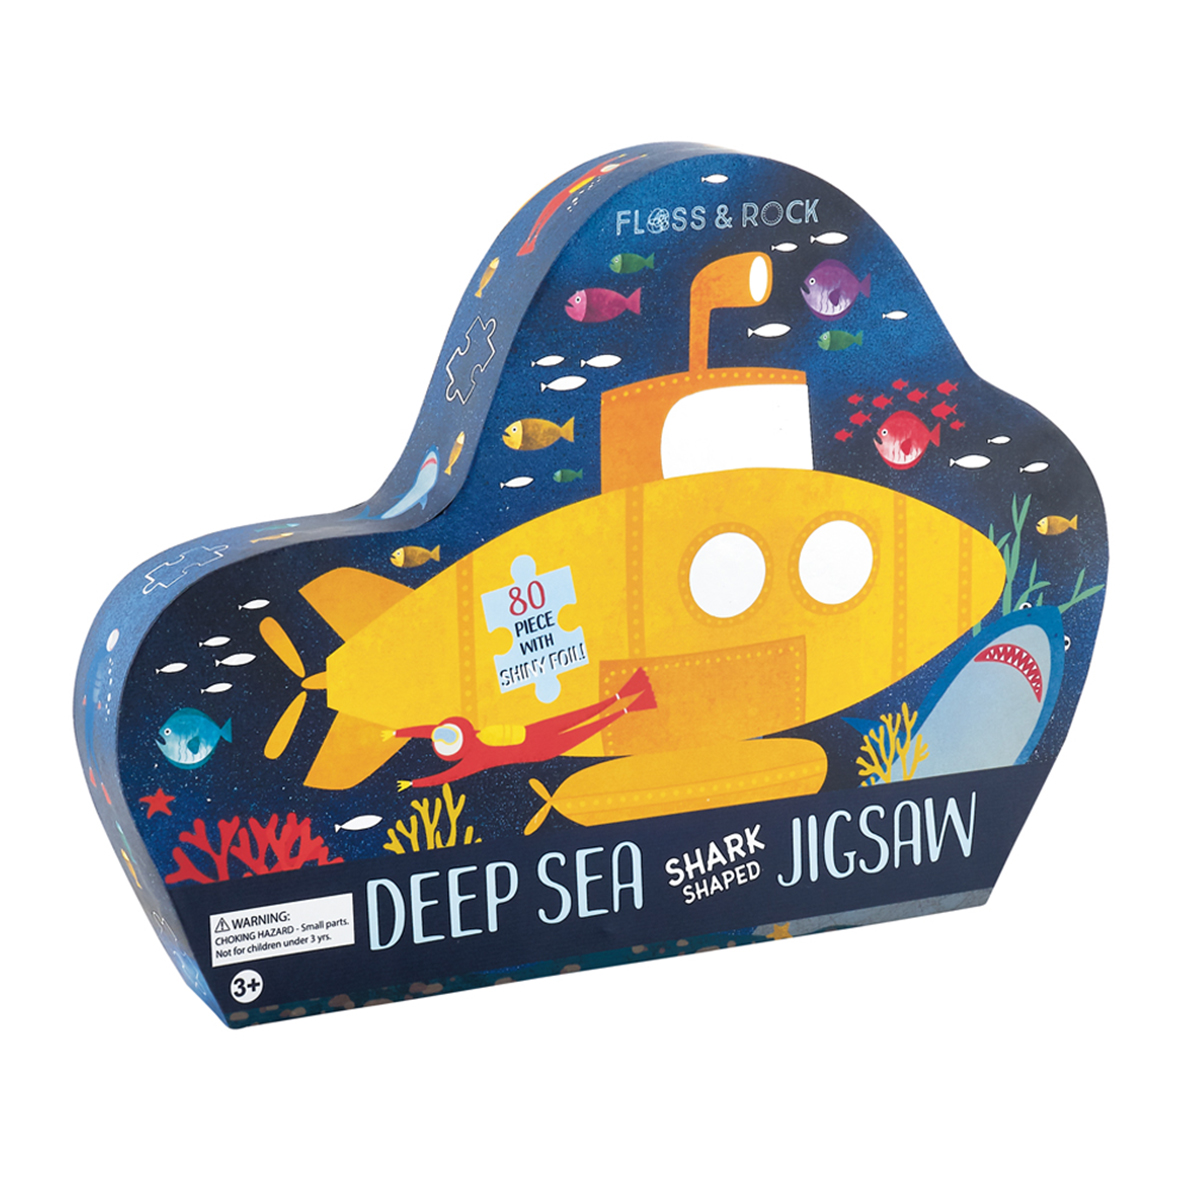 Floss & Rock Deep Sea Shark Shaped 80 Piece Jigsaw AW19